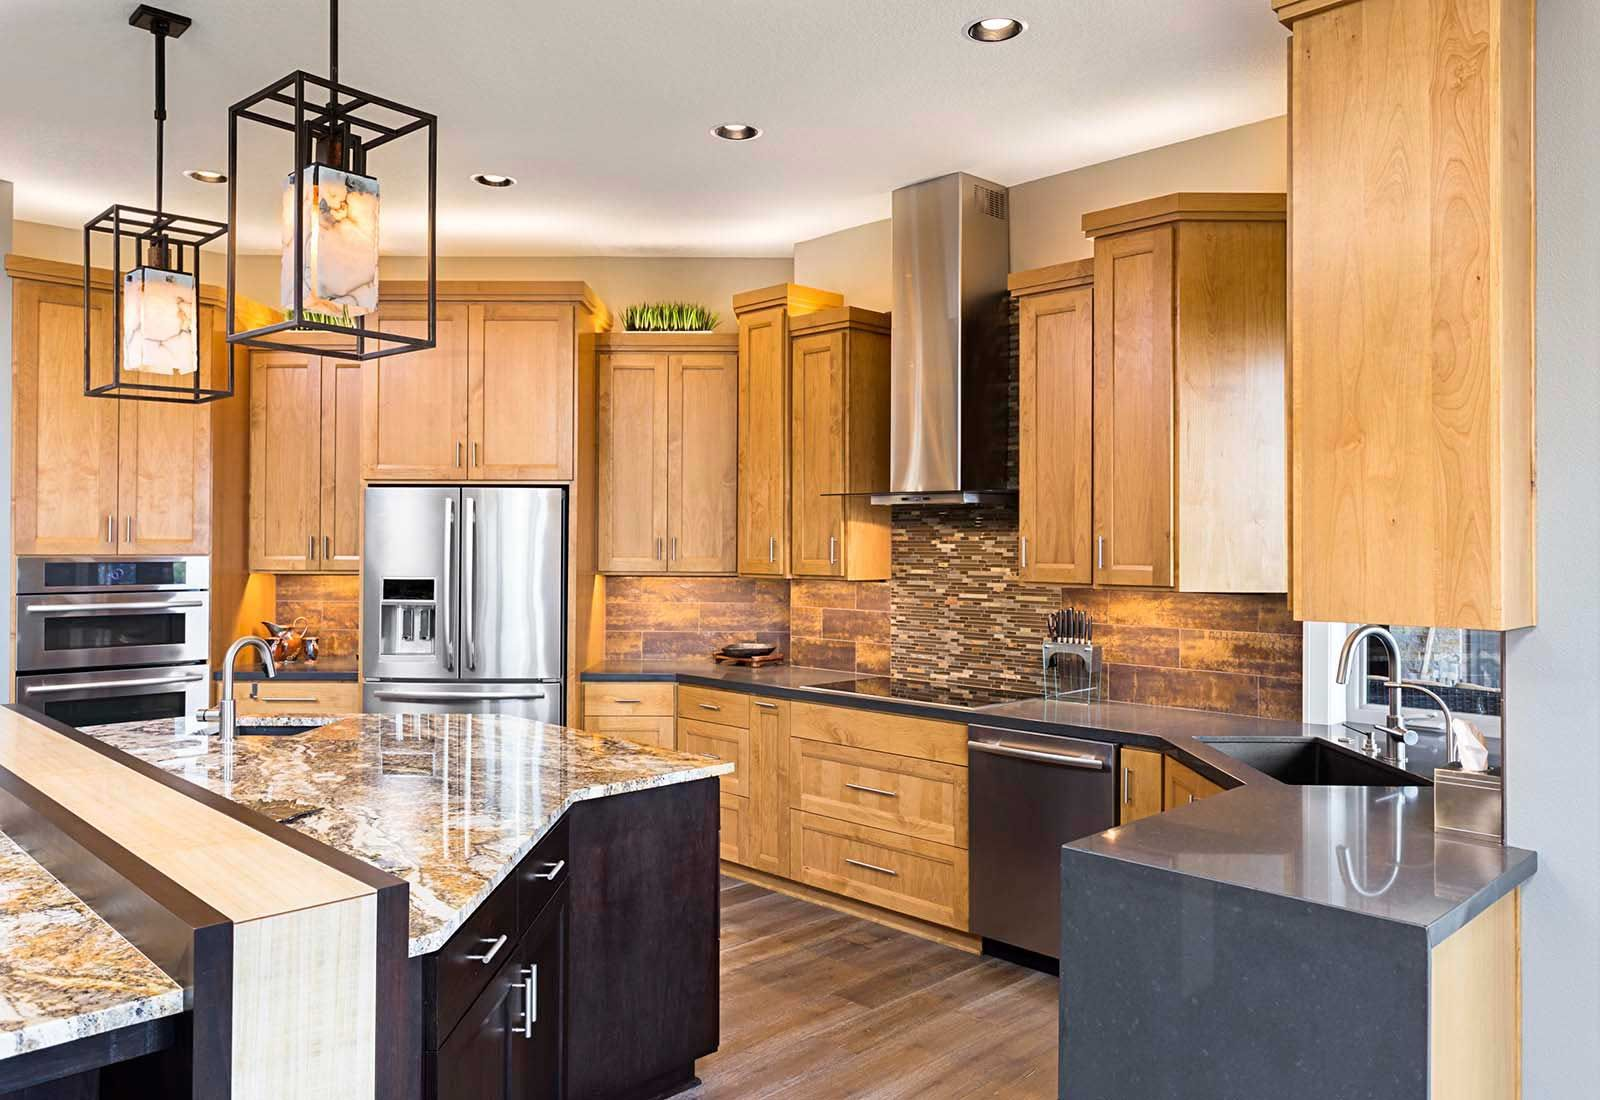 Kitchen Design And Remodel Near Me Cost Of Kitchen Cabinets